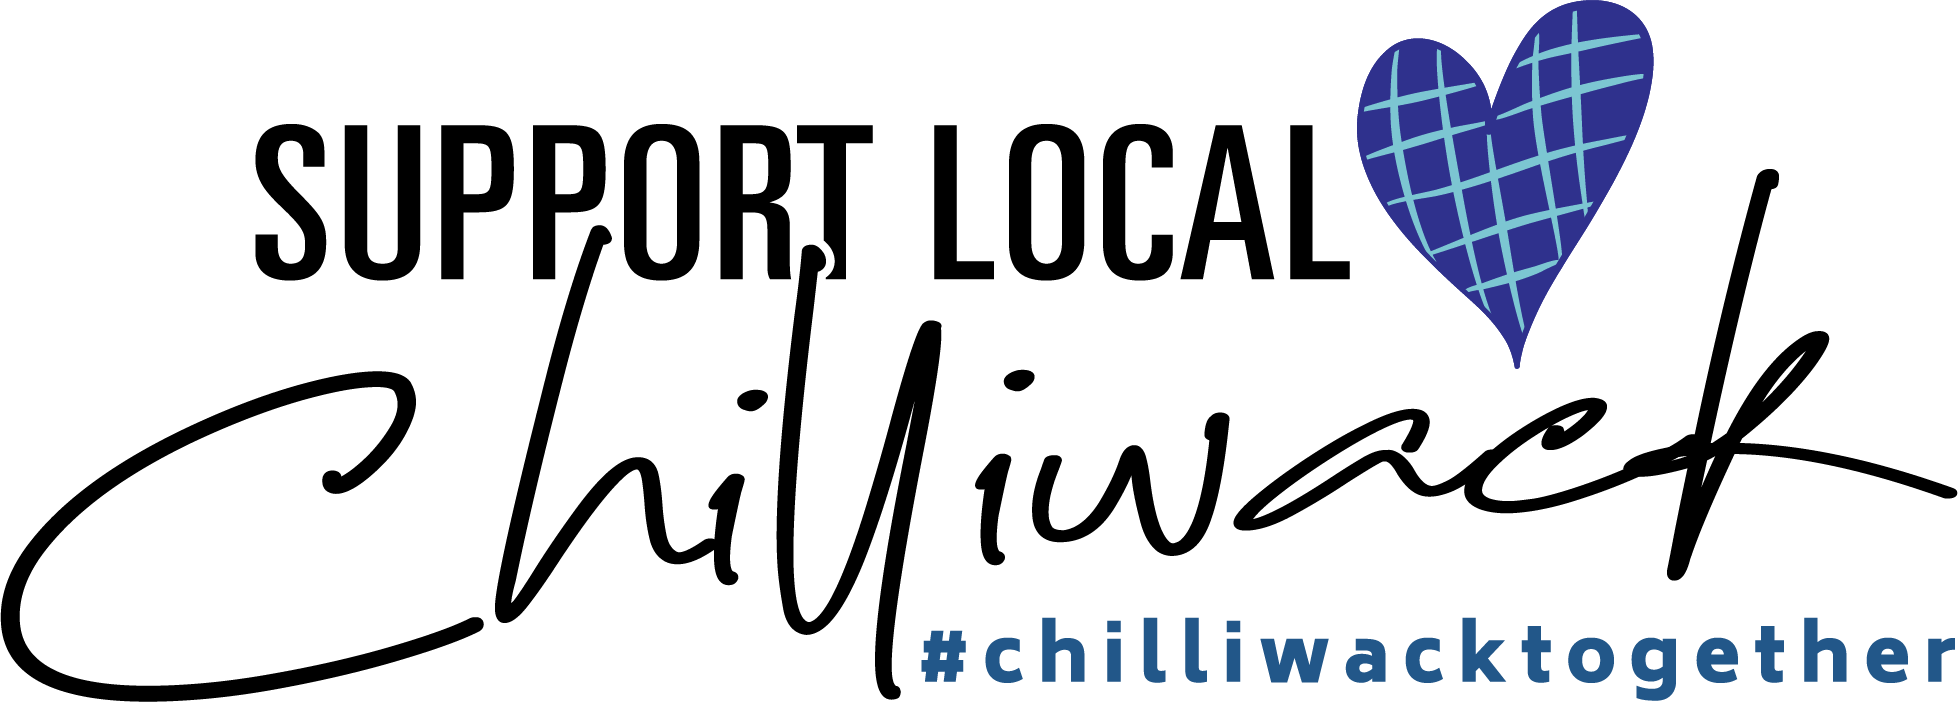 Support Local Chilliwack is an initiative of the Chilliwack Chamber of Commerce.